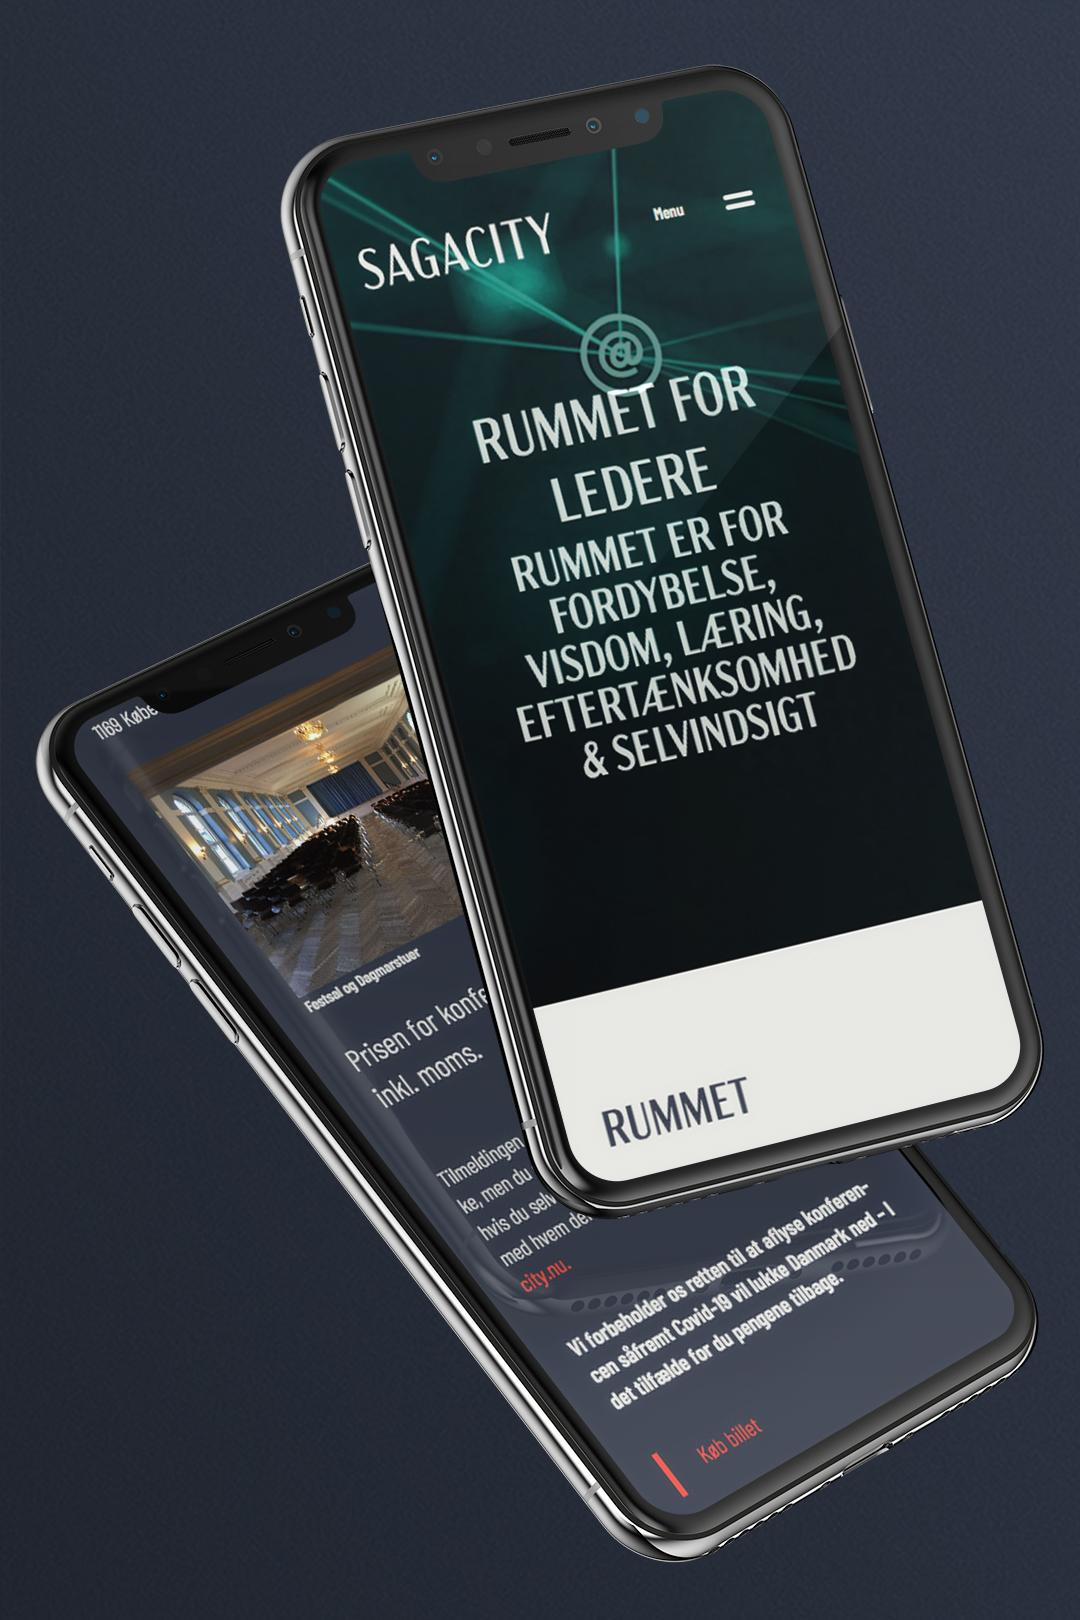 Sagacity website hero element with video on an iPhone X